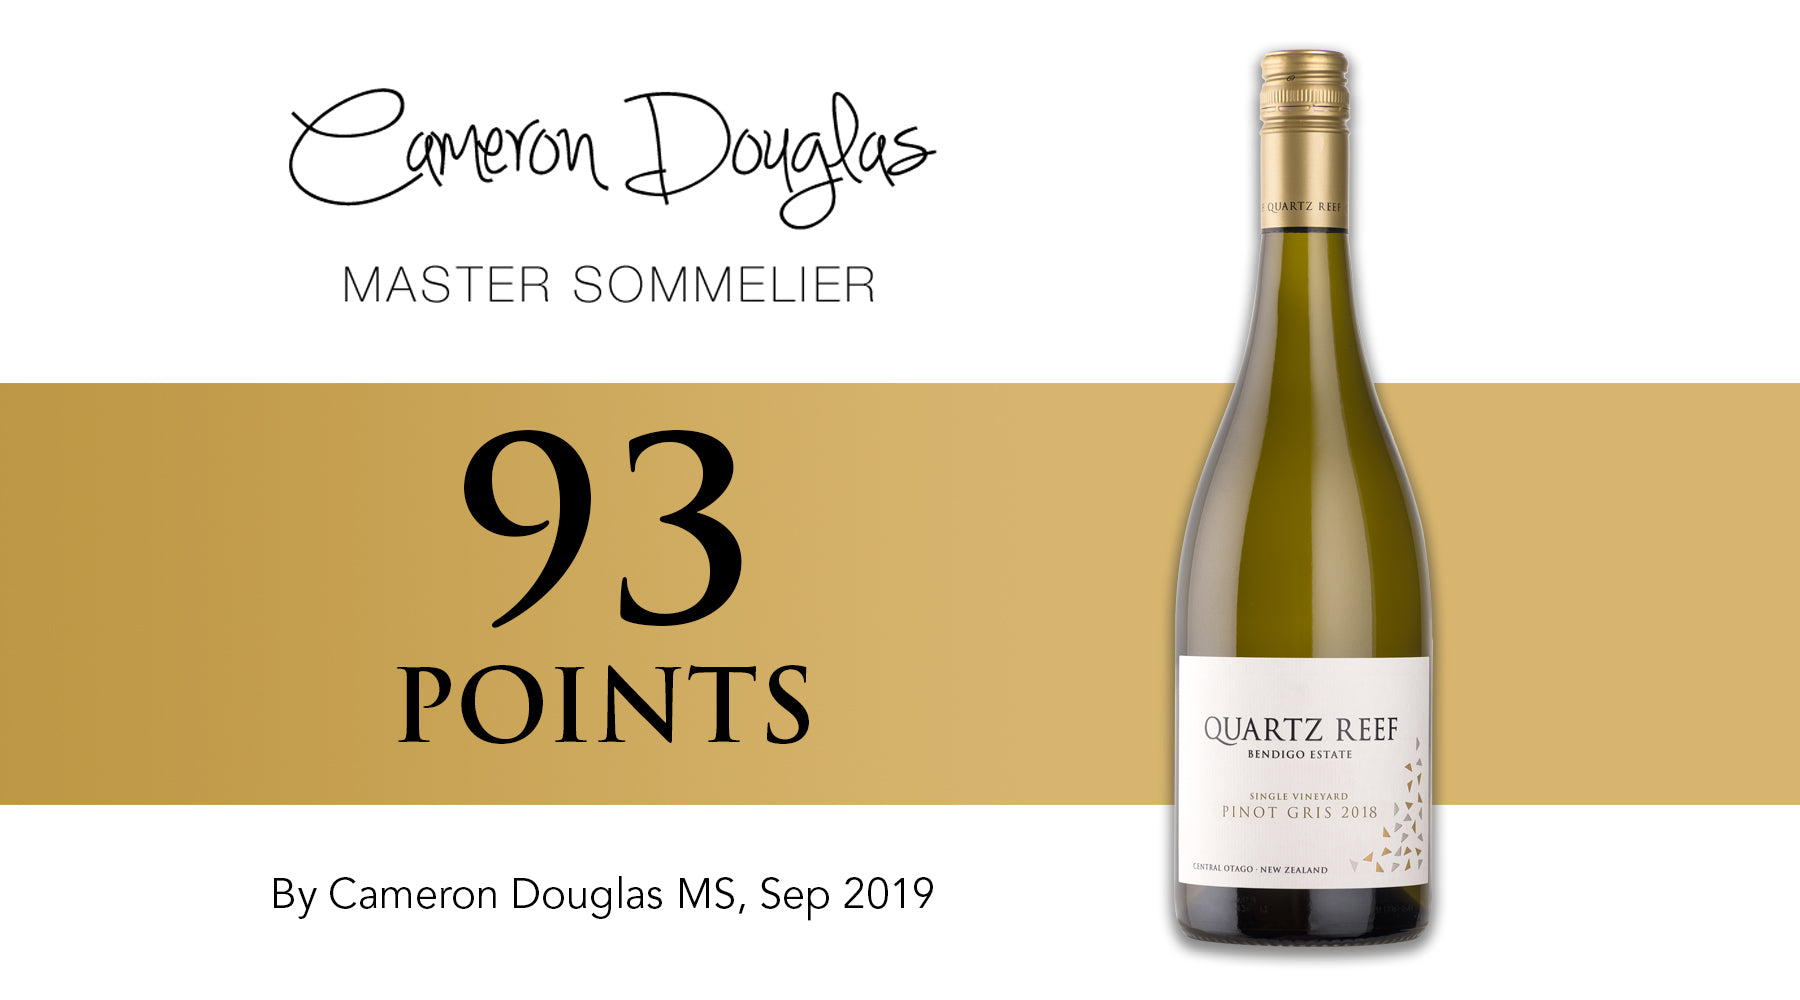 Pinot Gris 2018 - Awarded 93 Points